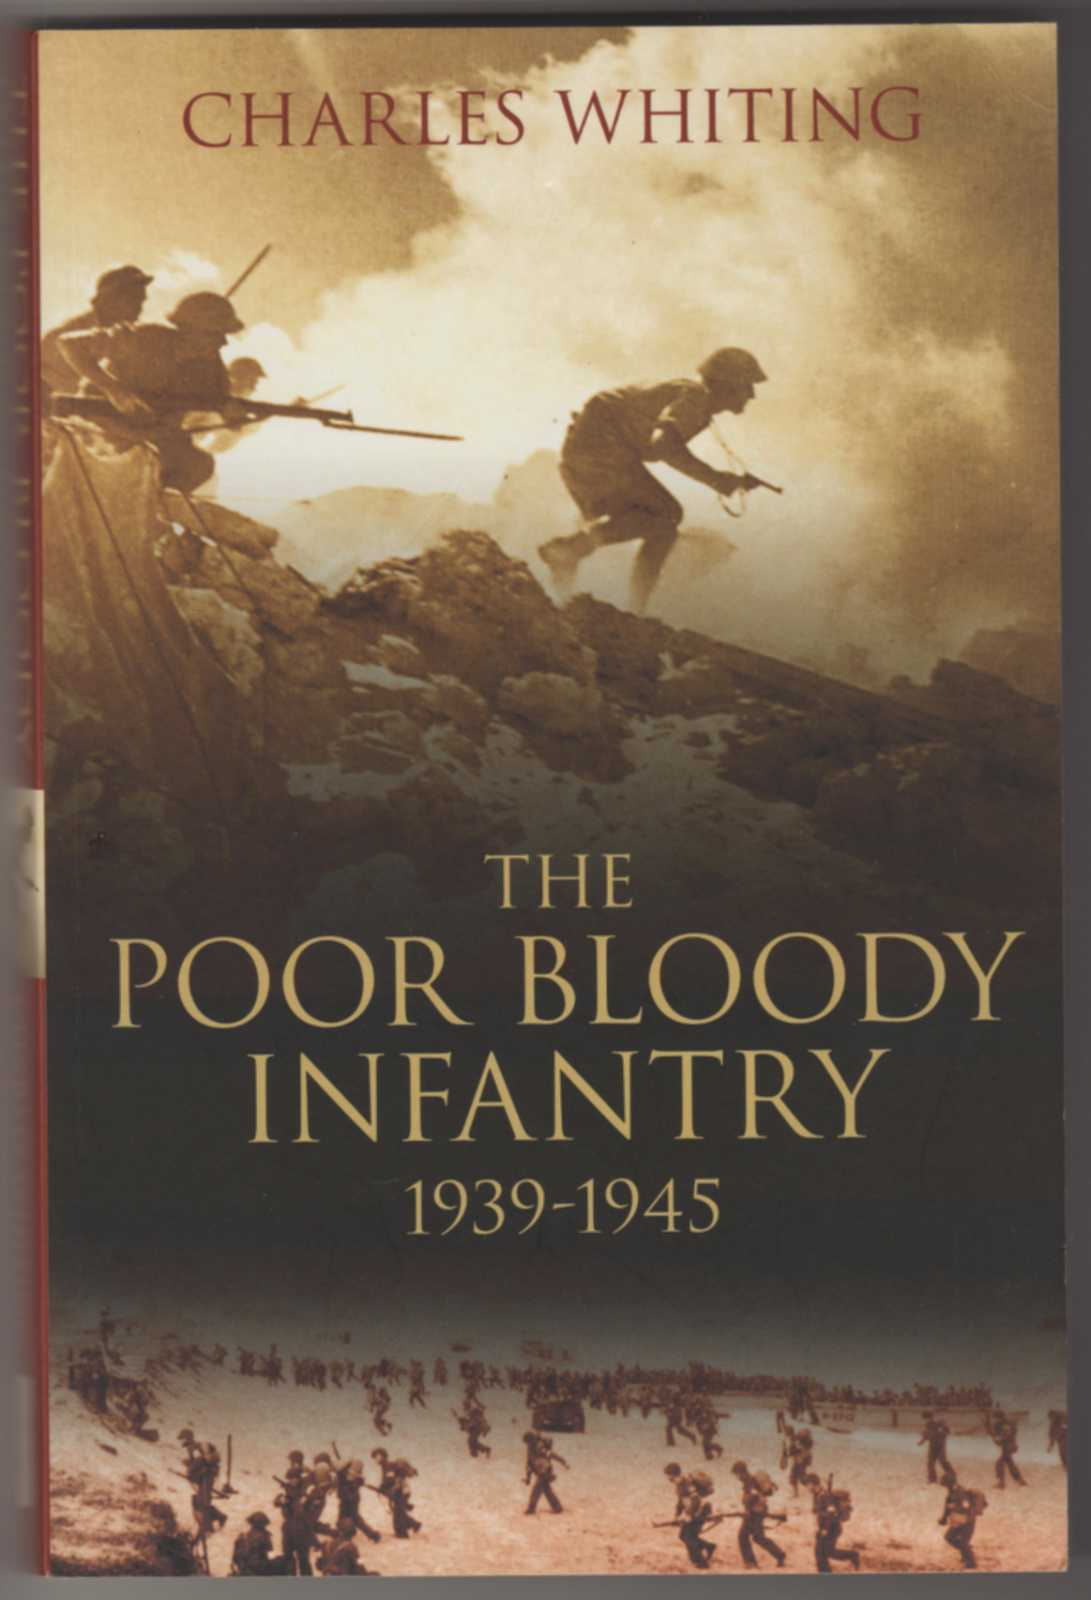 Image for THE POOR BLOODY INFANTRY 1939-1945